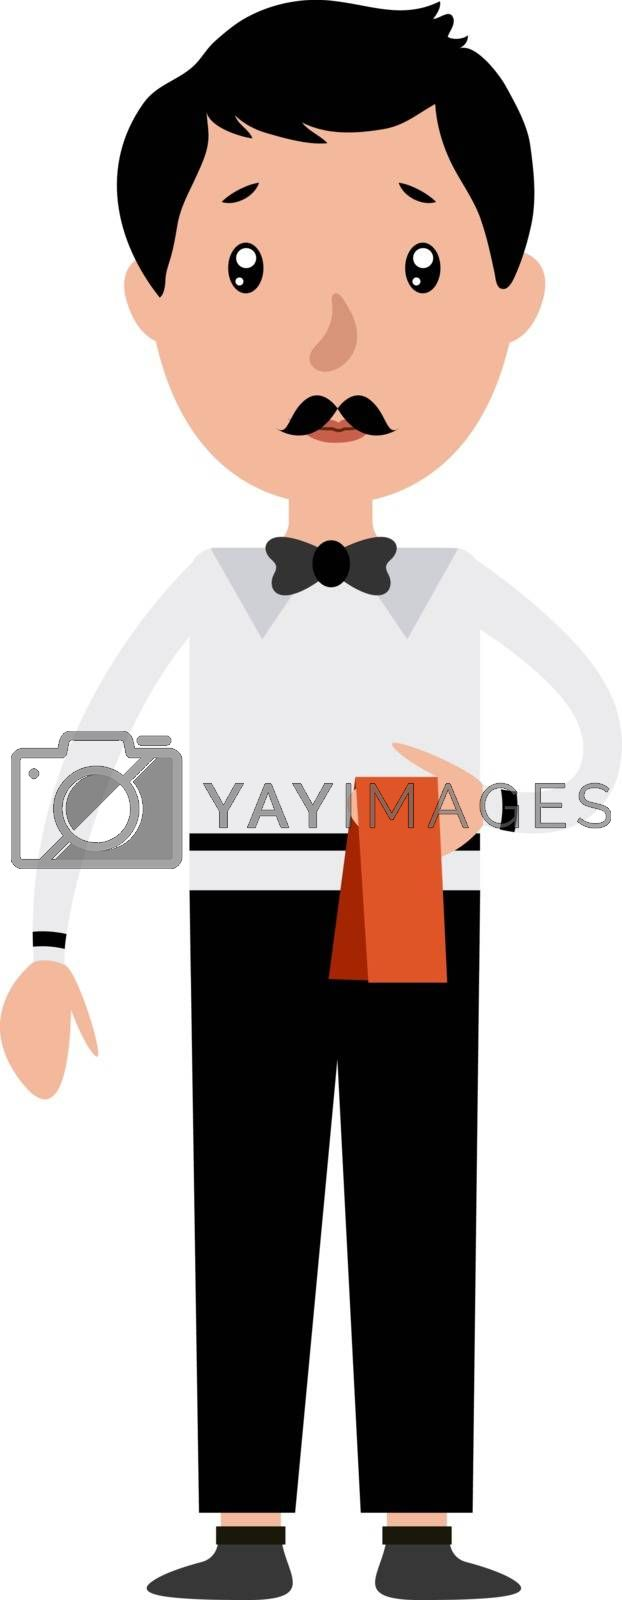 Royalty free image of Cartoon serious waiter illustration vector on white background by Morphart